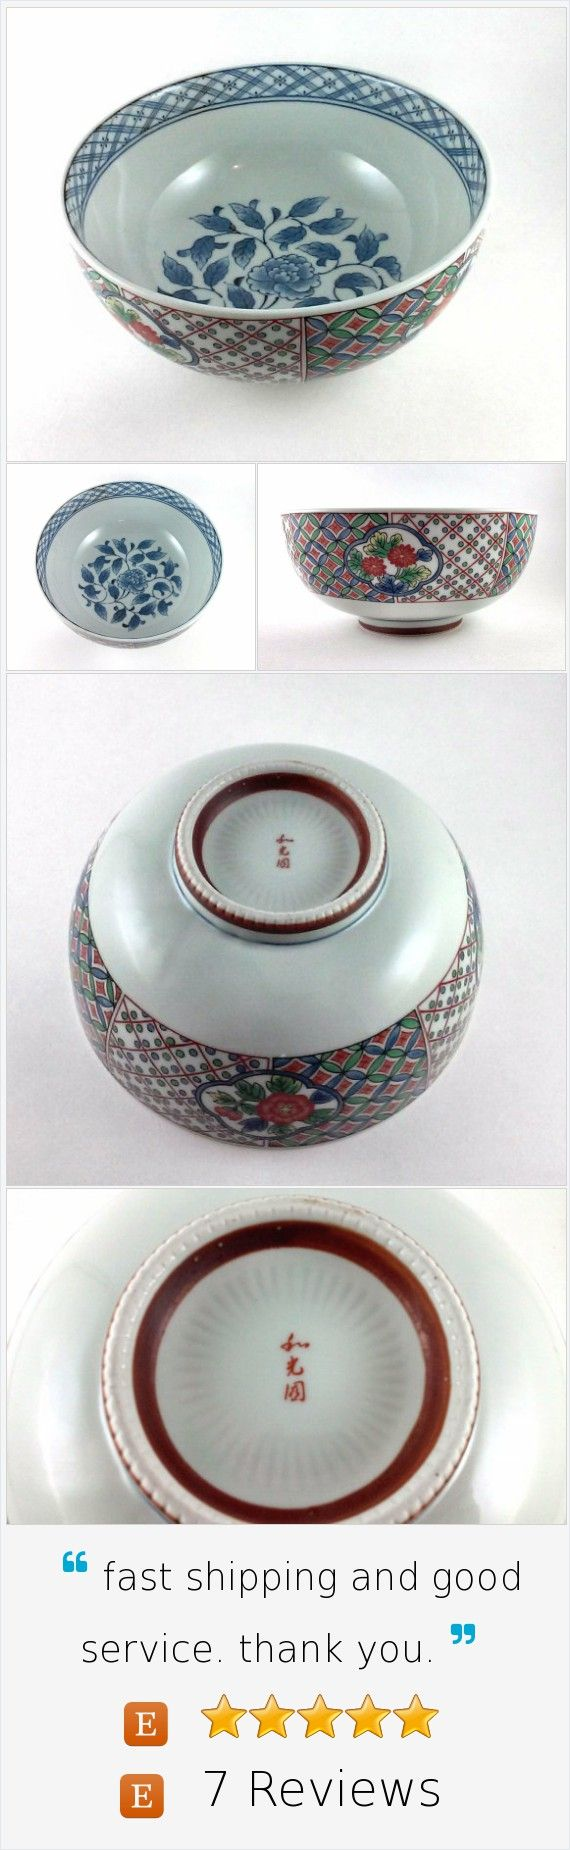 Floral Japanese Rice Bowl- Blue and White Dining Ware